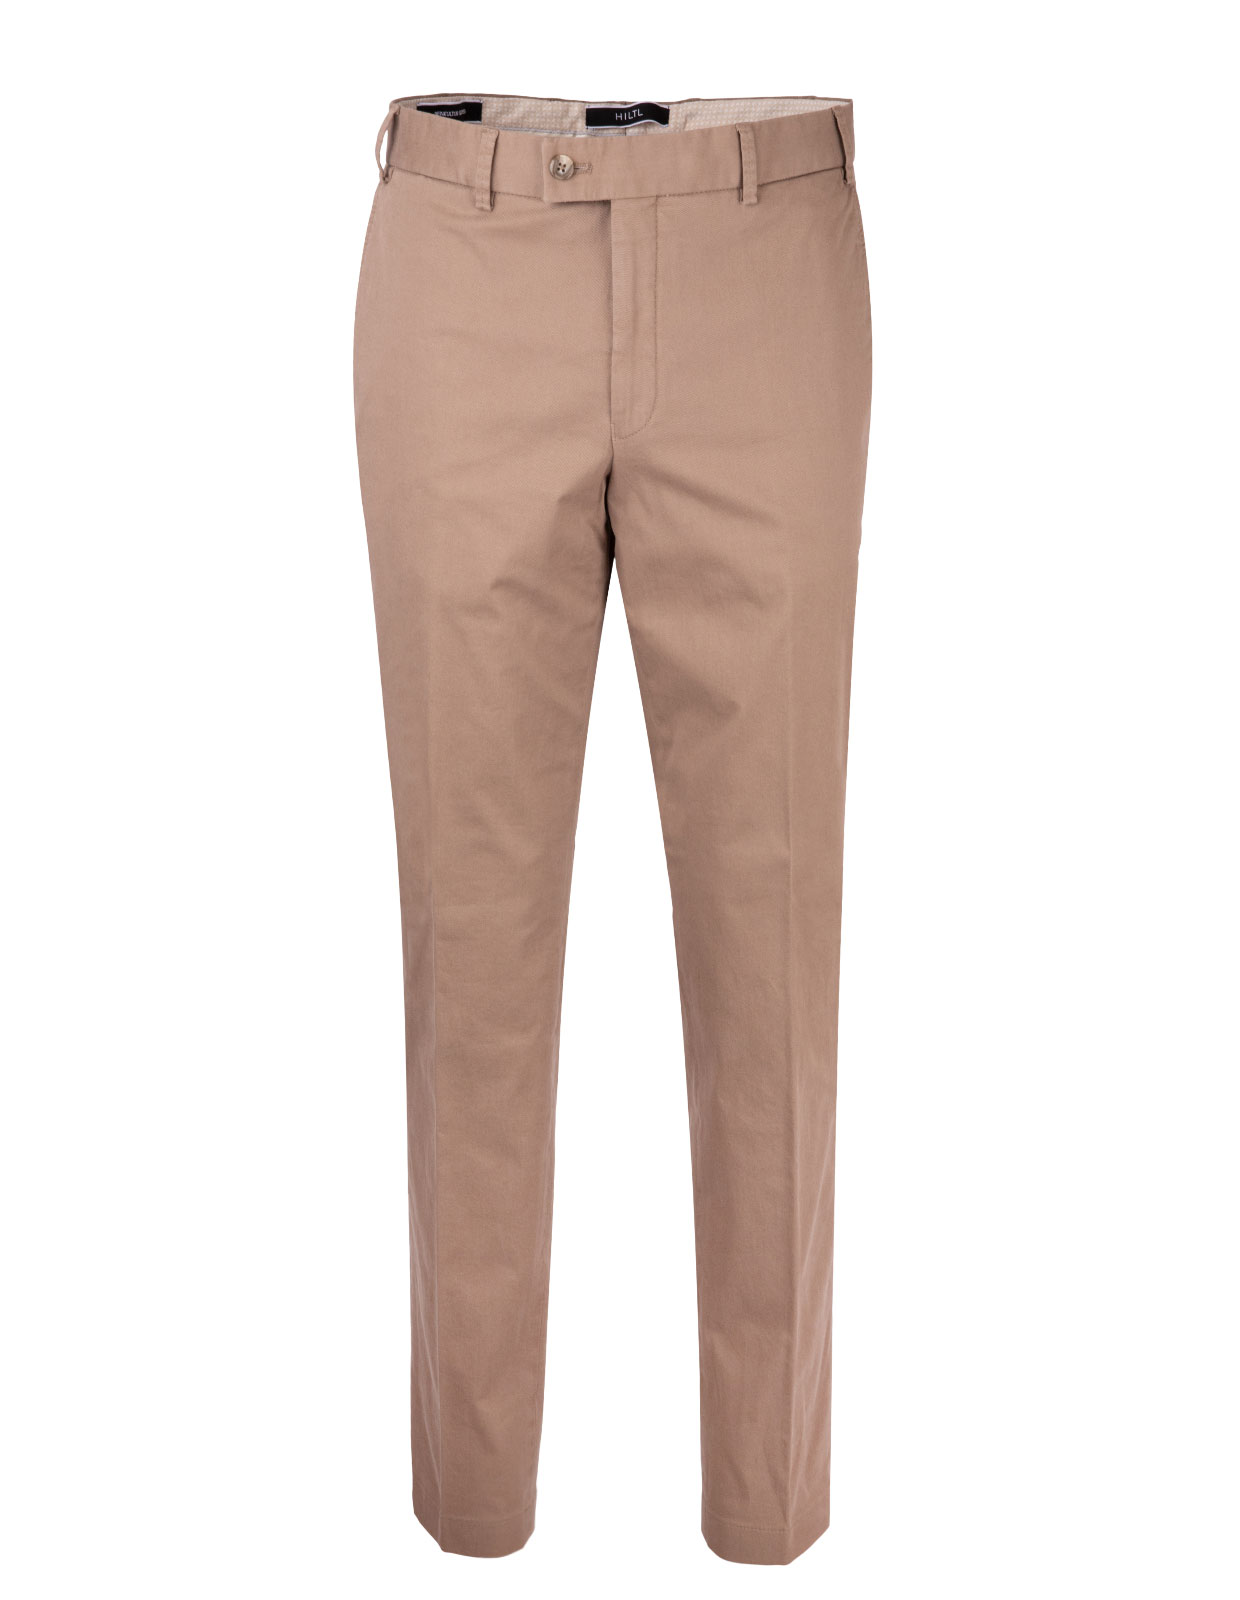 Parma Regular Fit Byxa Cotton Twill Mole